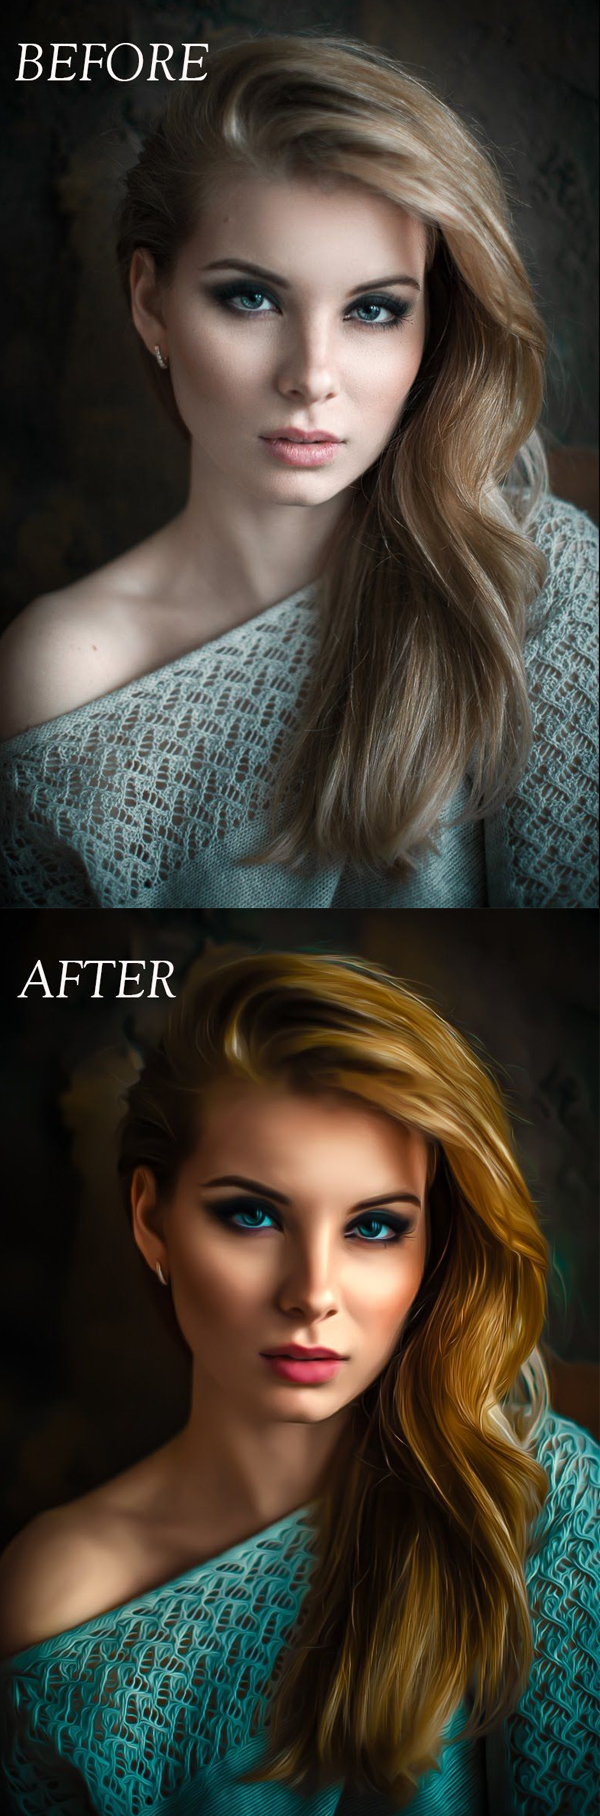 How to Create Oil Painting Smudge Photo Effect in Photoshop Tutorial